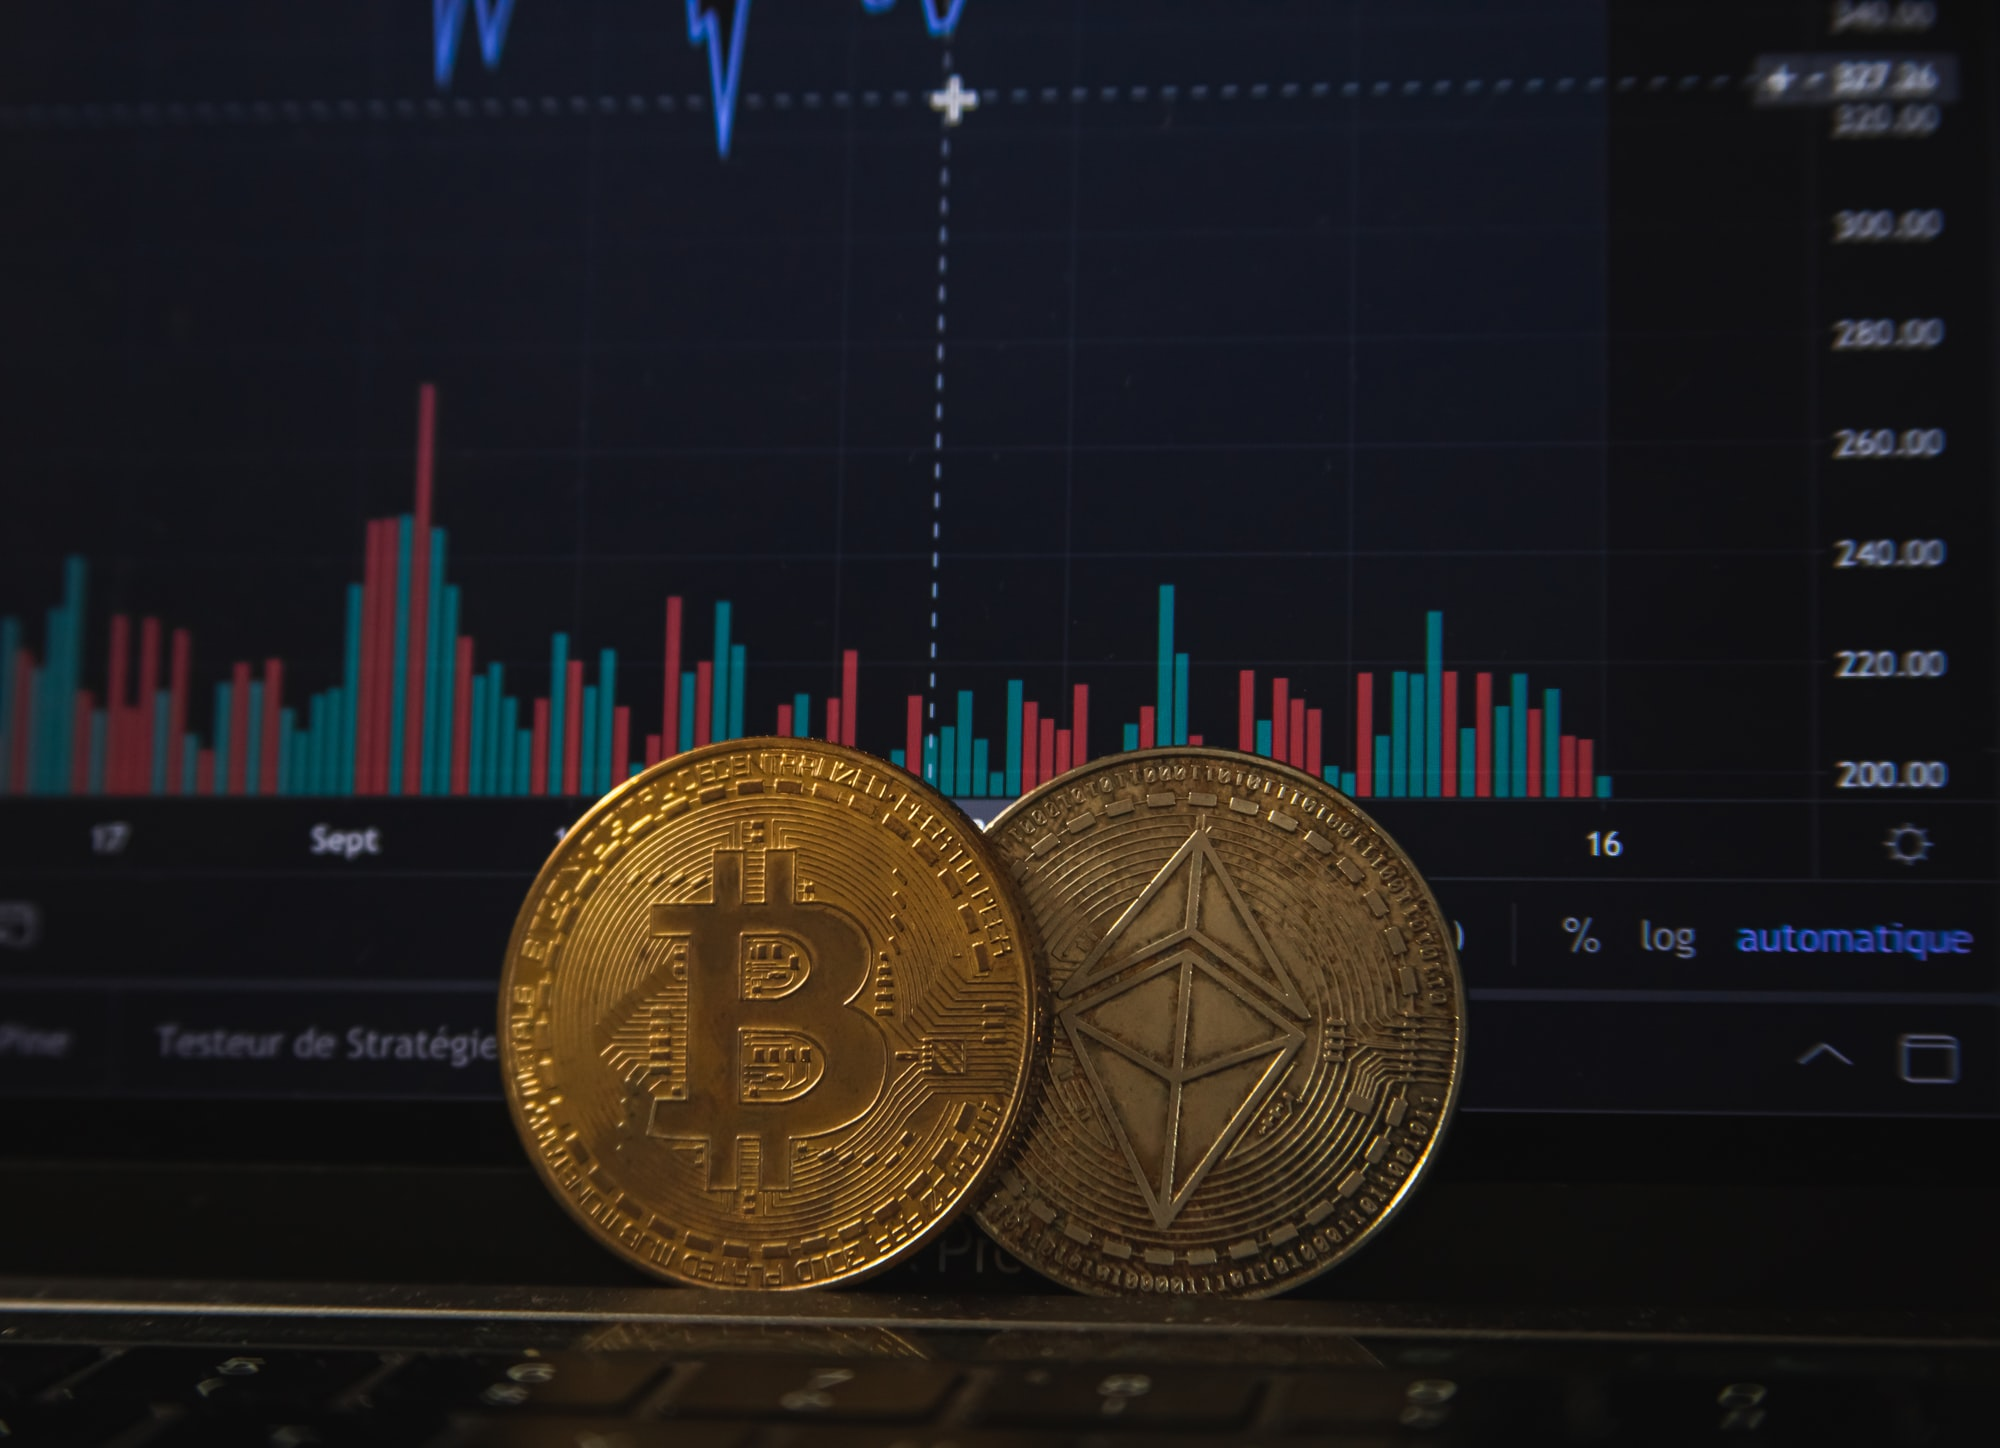 A cryptocurrency (or crypto currency) is a digital asset designed to work as a medium of exchange wherein individual coin ownership records are stored in a ledger existing in a form of computerized database using strong cryptography to secure transaction records, to control the creation of additional coins, and to verify the transfer of coin ownership.